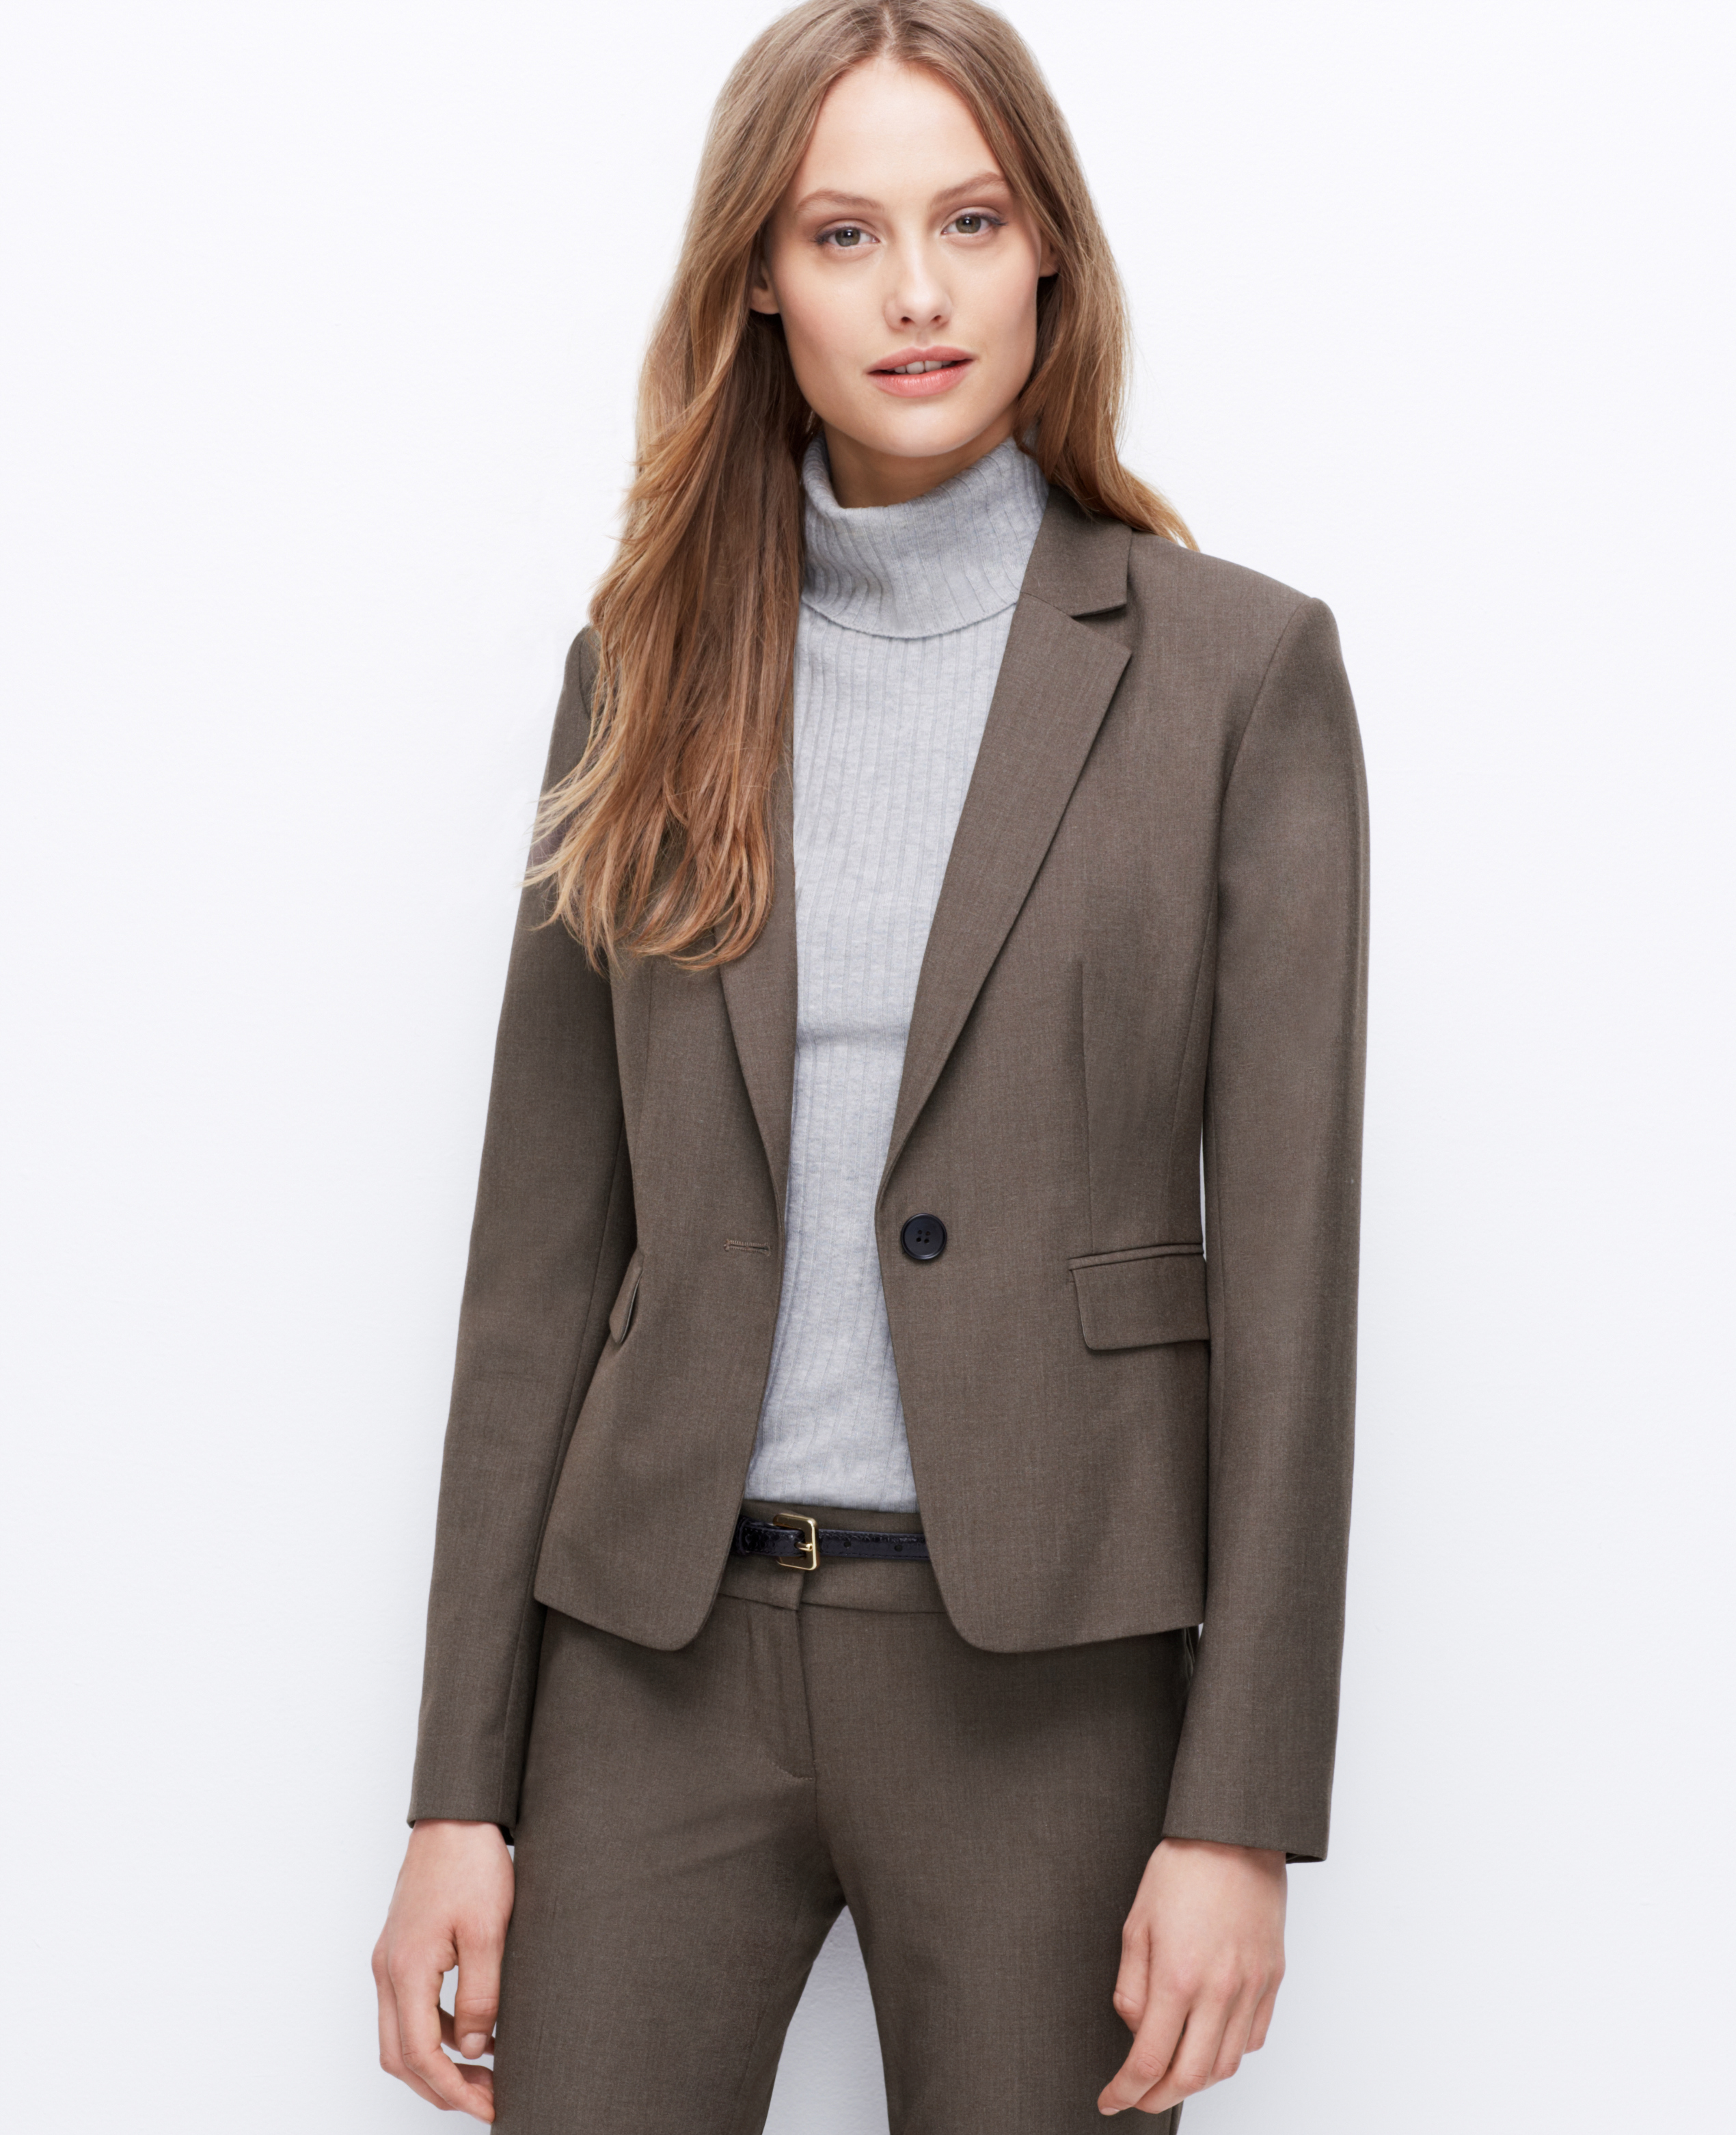 Lyst - Ann Taylor Petite All-Season Stretch One Button Jacket in Brown